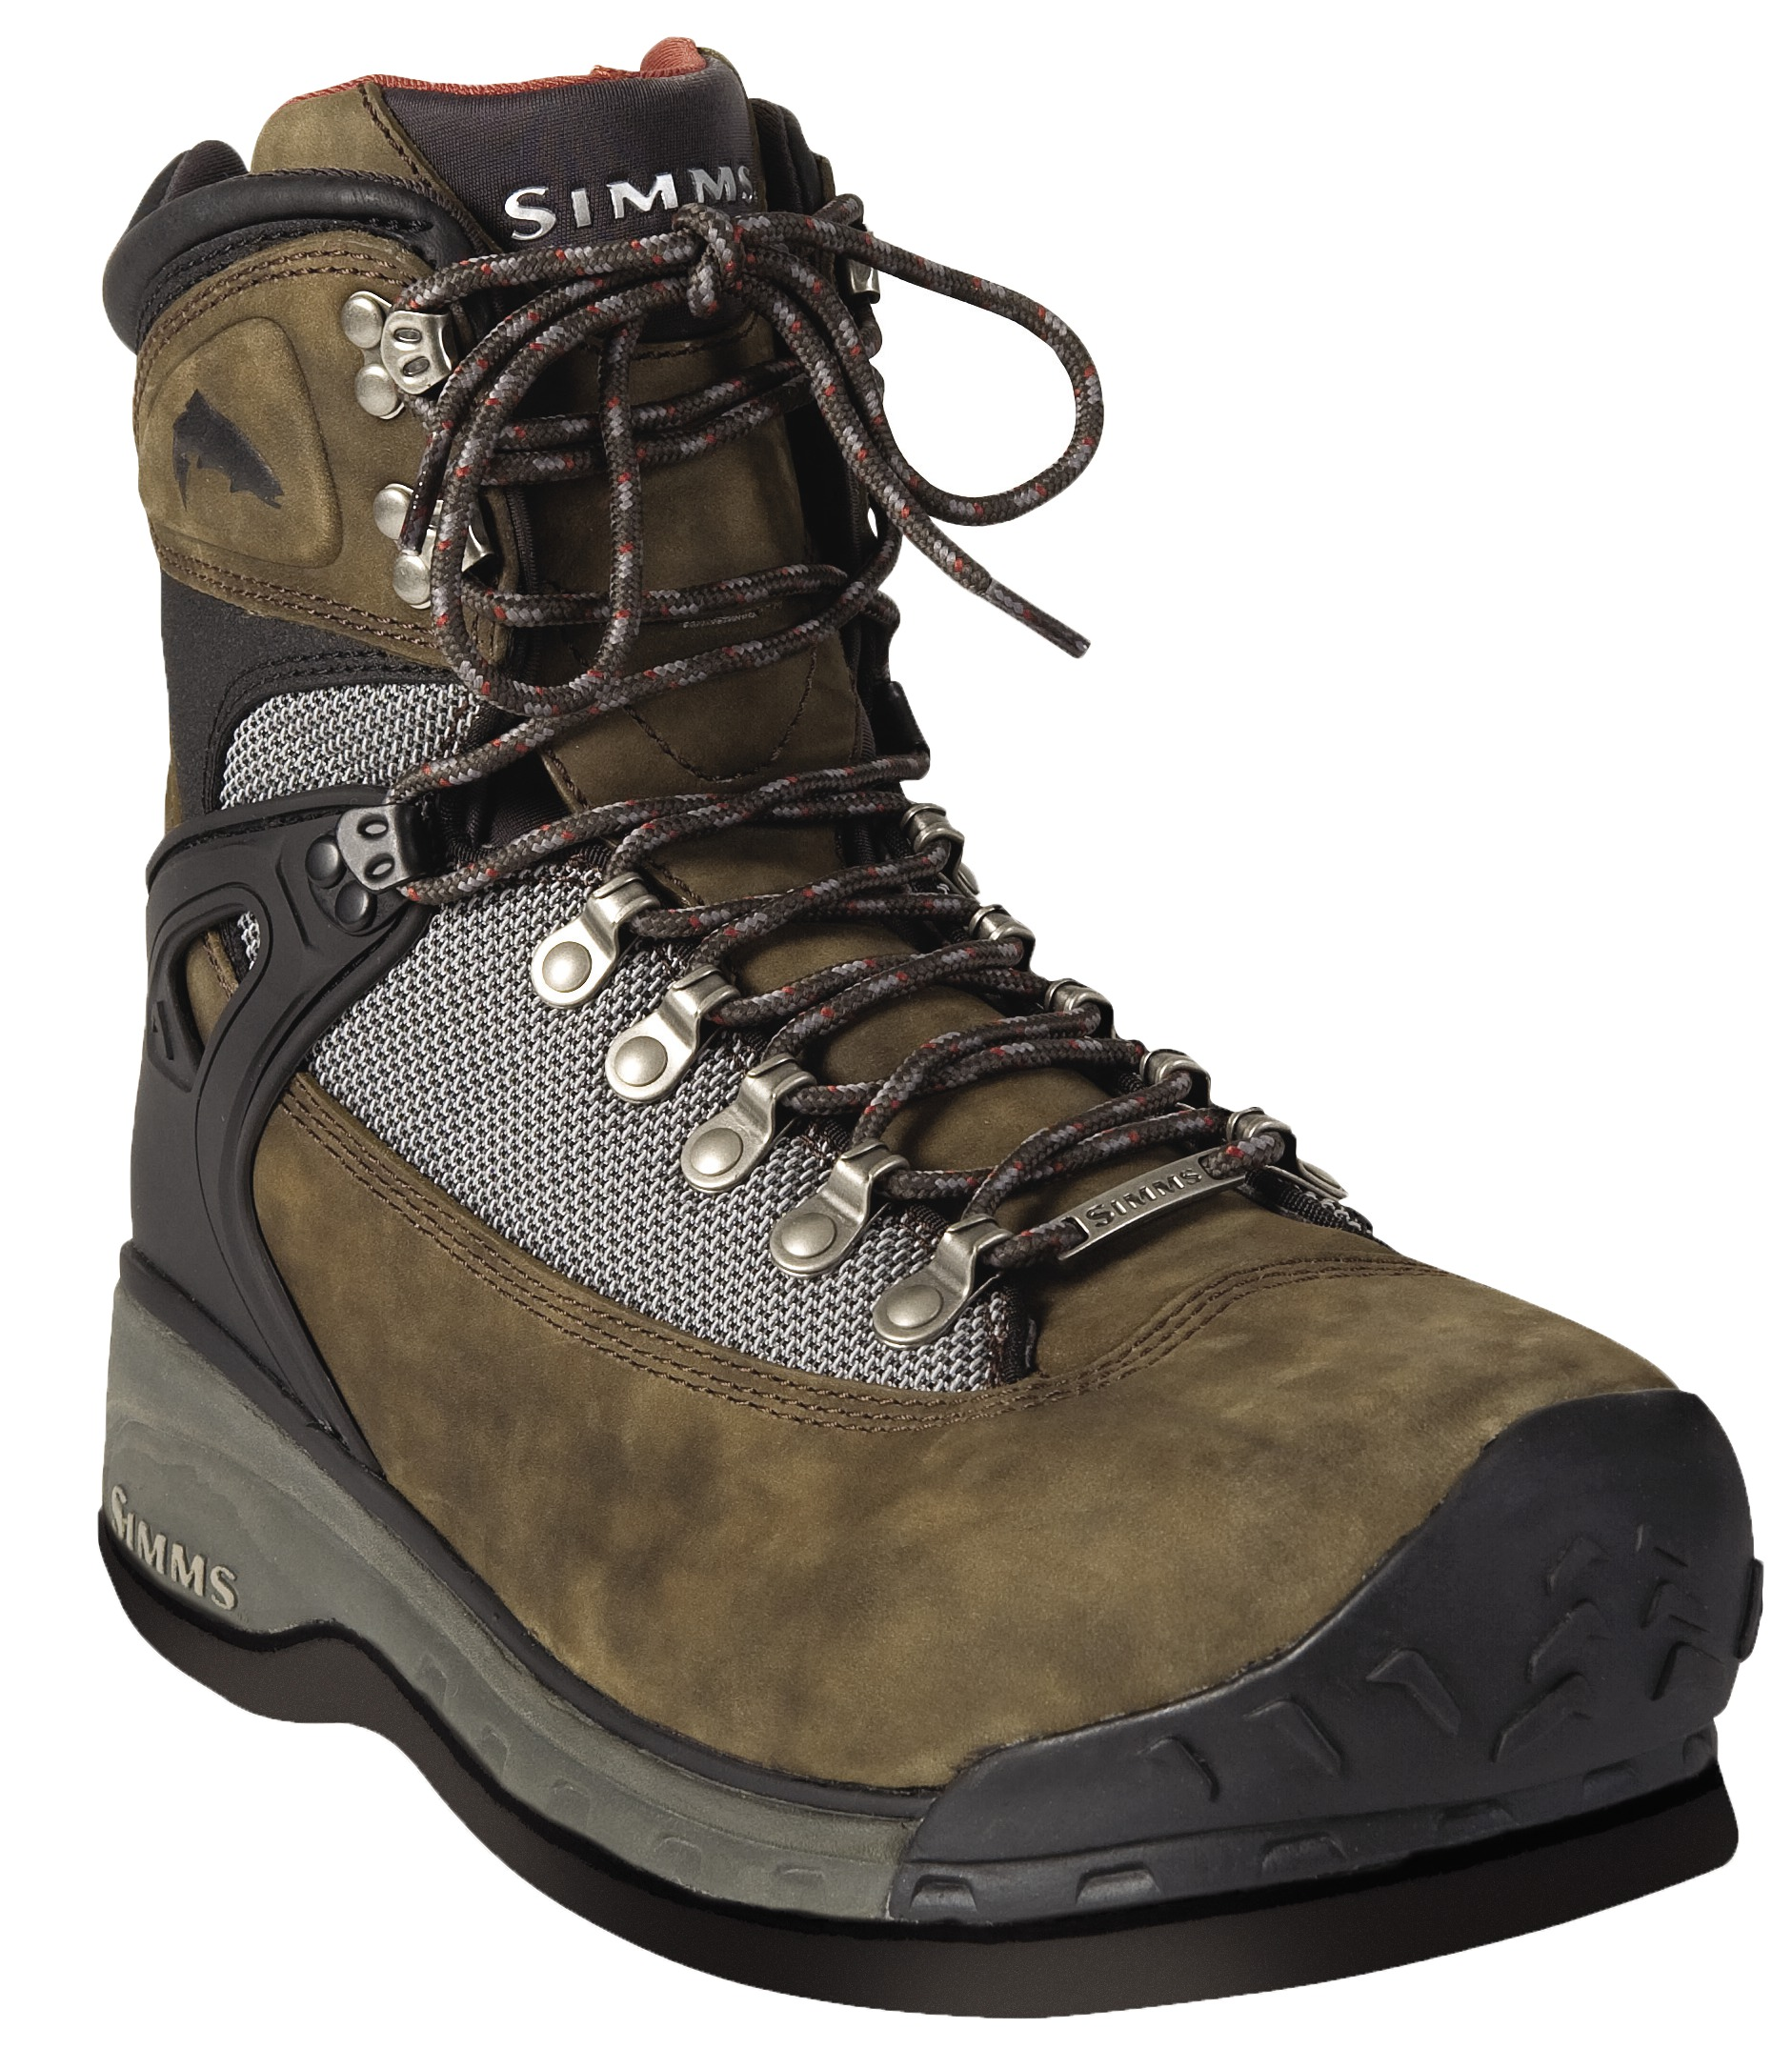 Simms Guide Felt Sole Wading Boots